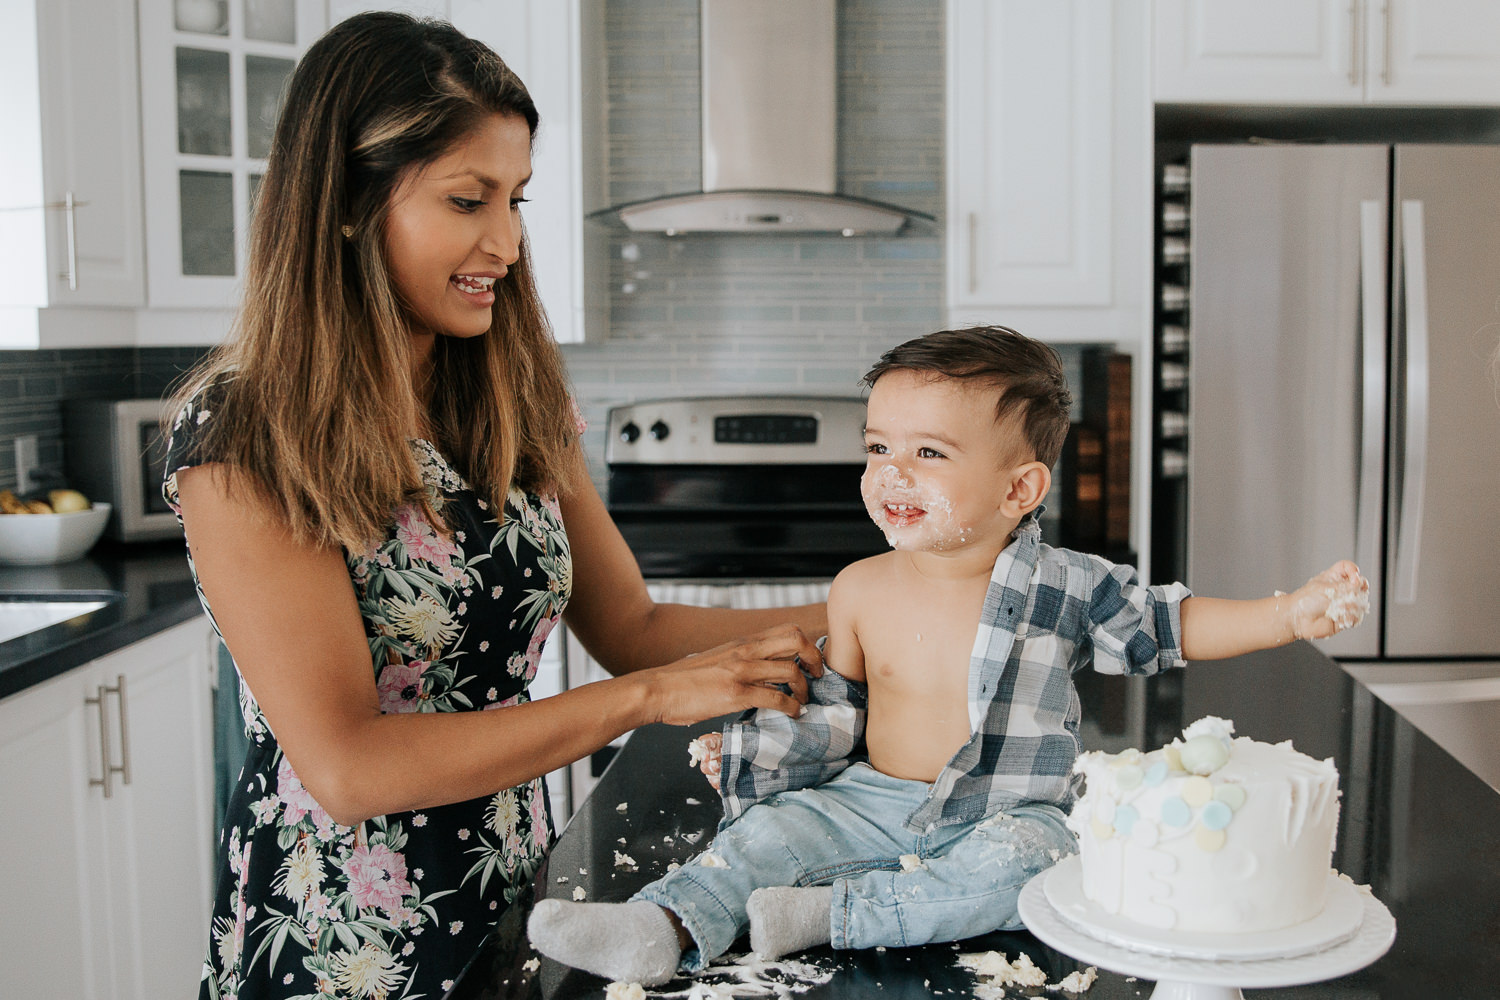 1 year old baby boy with dark brown hair and eyes in blue and white plaid shirt sitting on kitchen counter doing cake smash as mom tries to take off his shirt - Barrie In-Home Photography